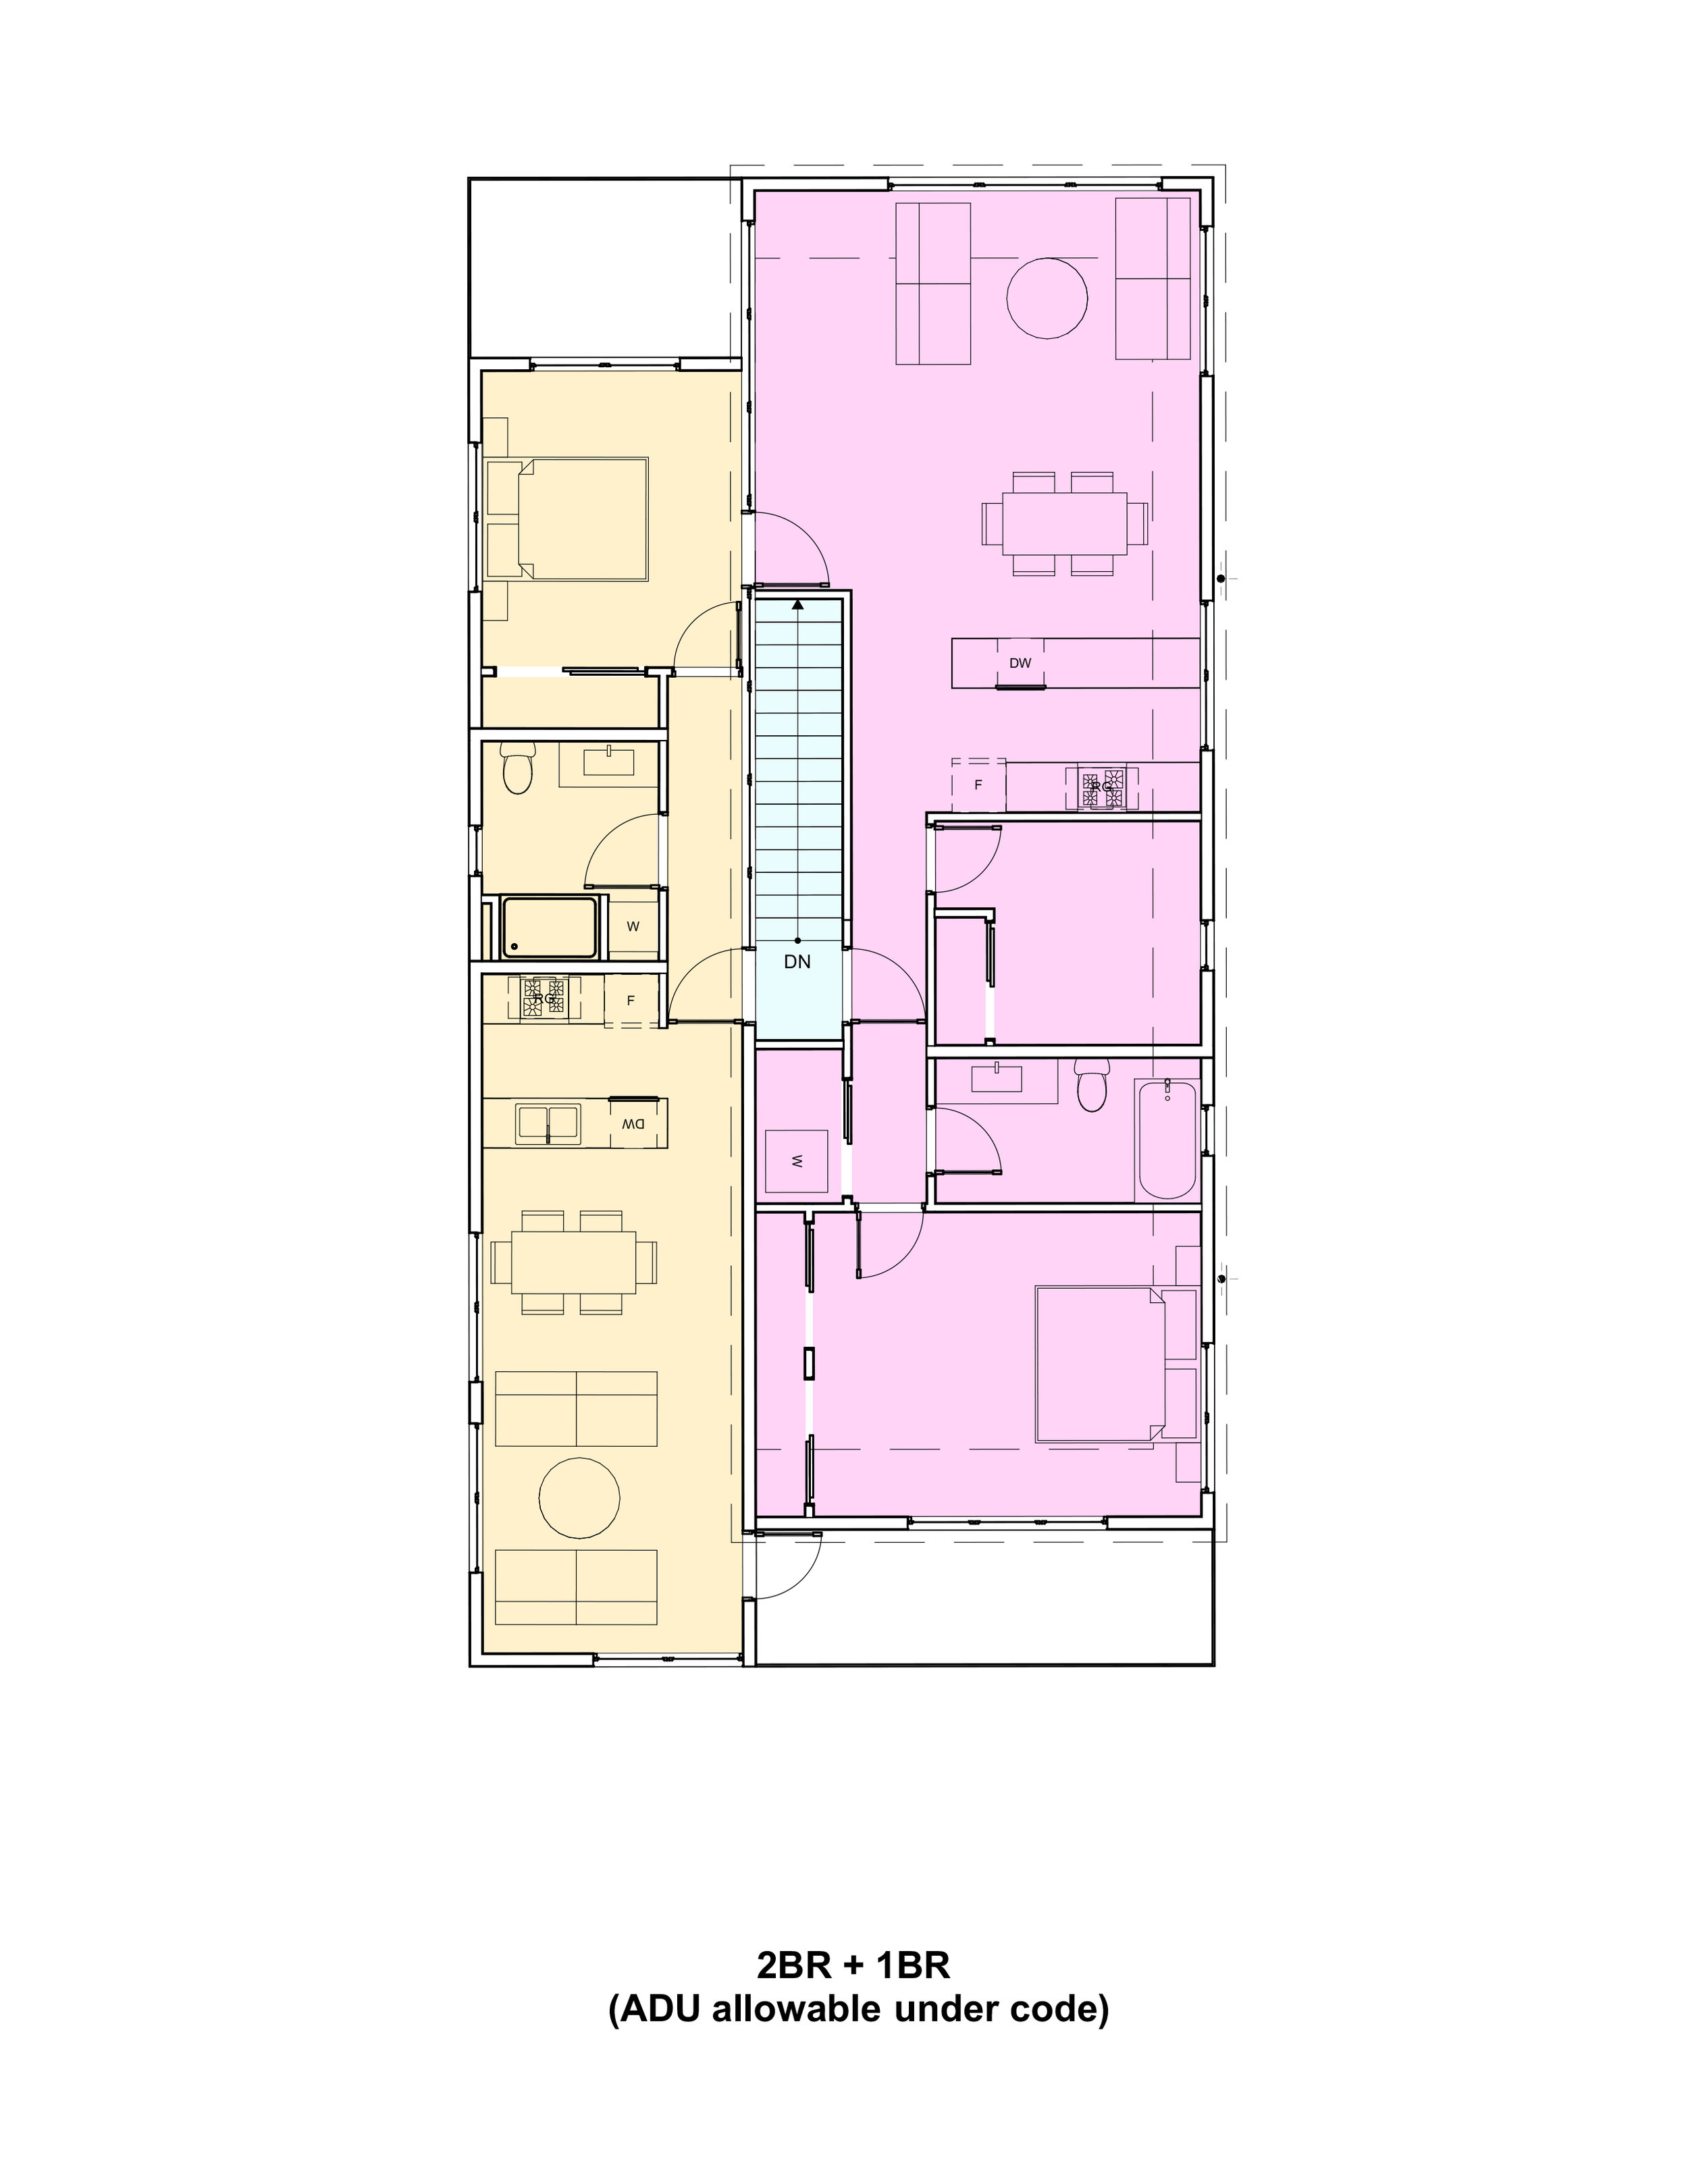 Here is a second story plan, with a primary and accessory unit. could easily be a 3br and studio apartment